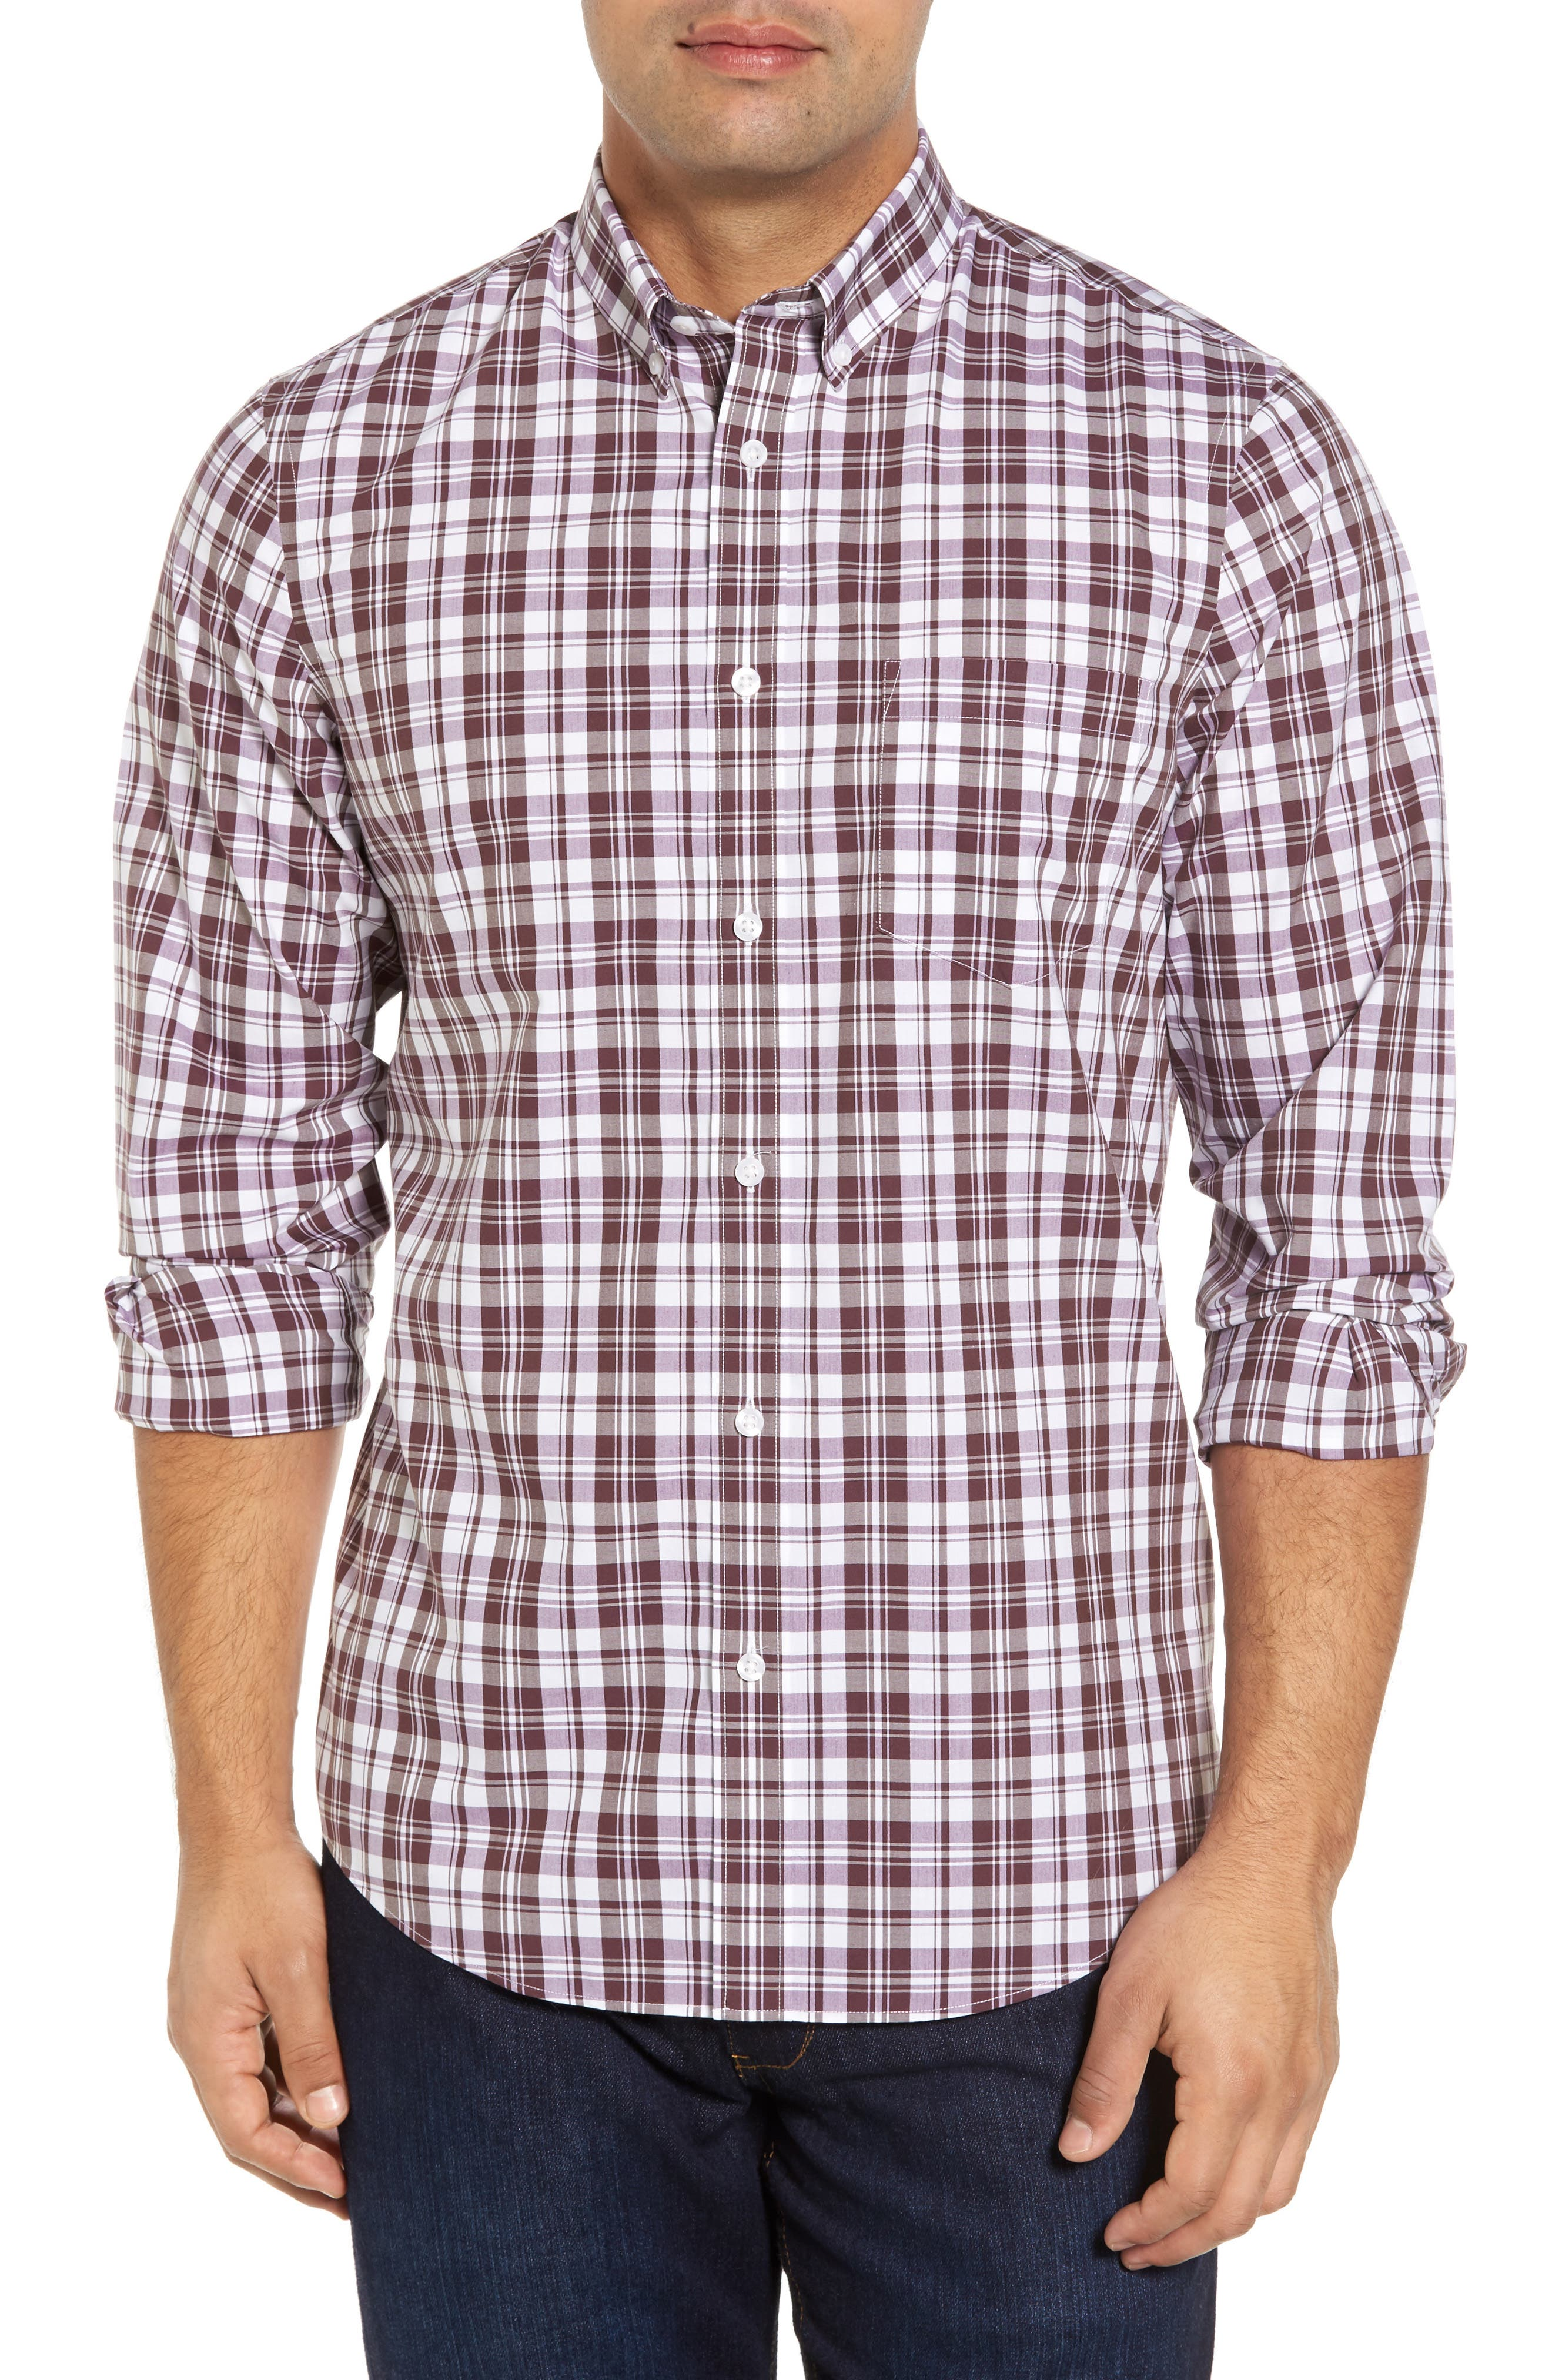 Alternate Image 1 Selected - Nordstrom Men's Shop Smartcare™ Regular Fit Plaid Sport Shirt